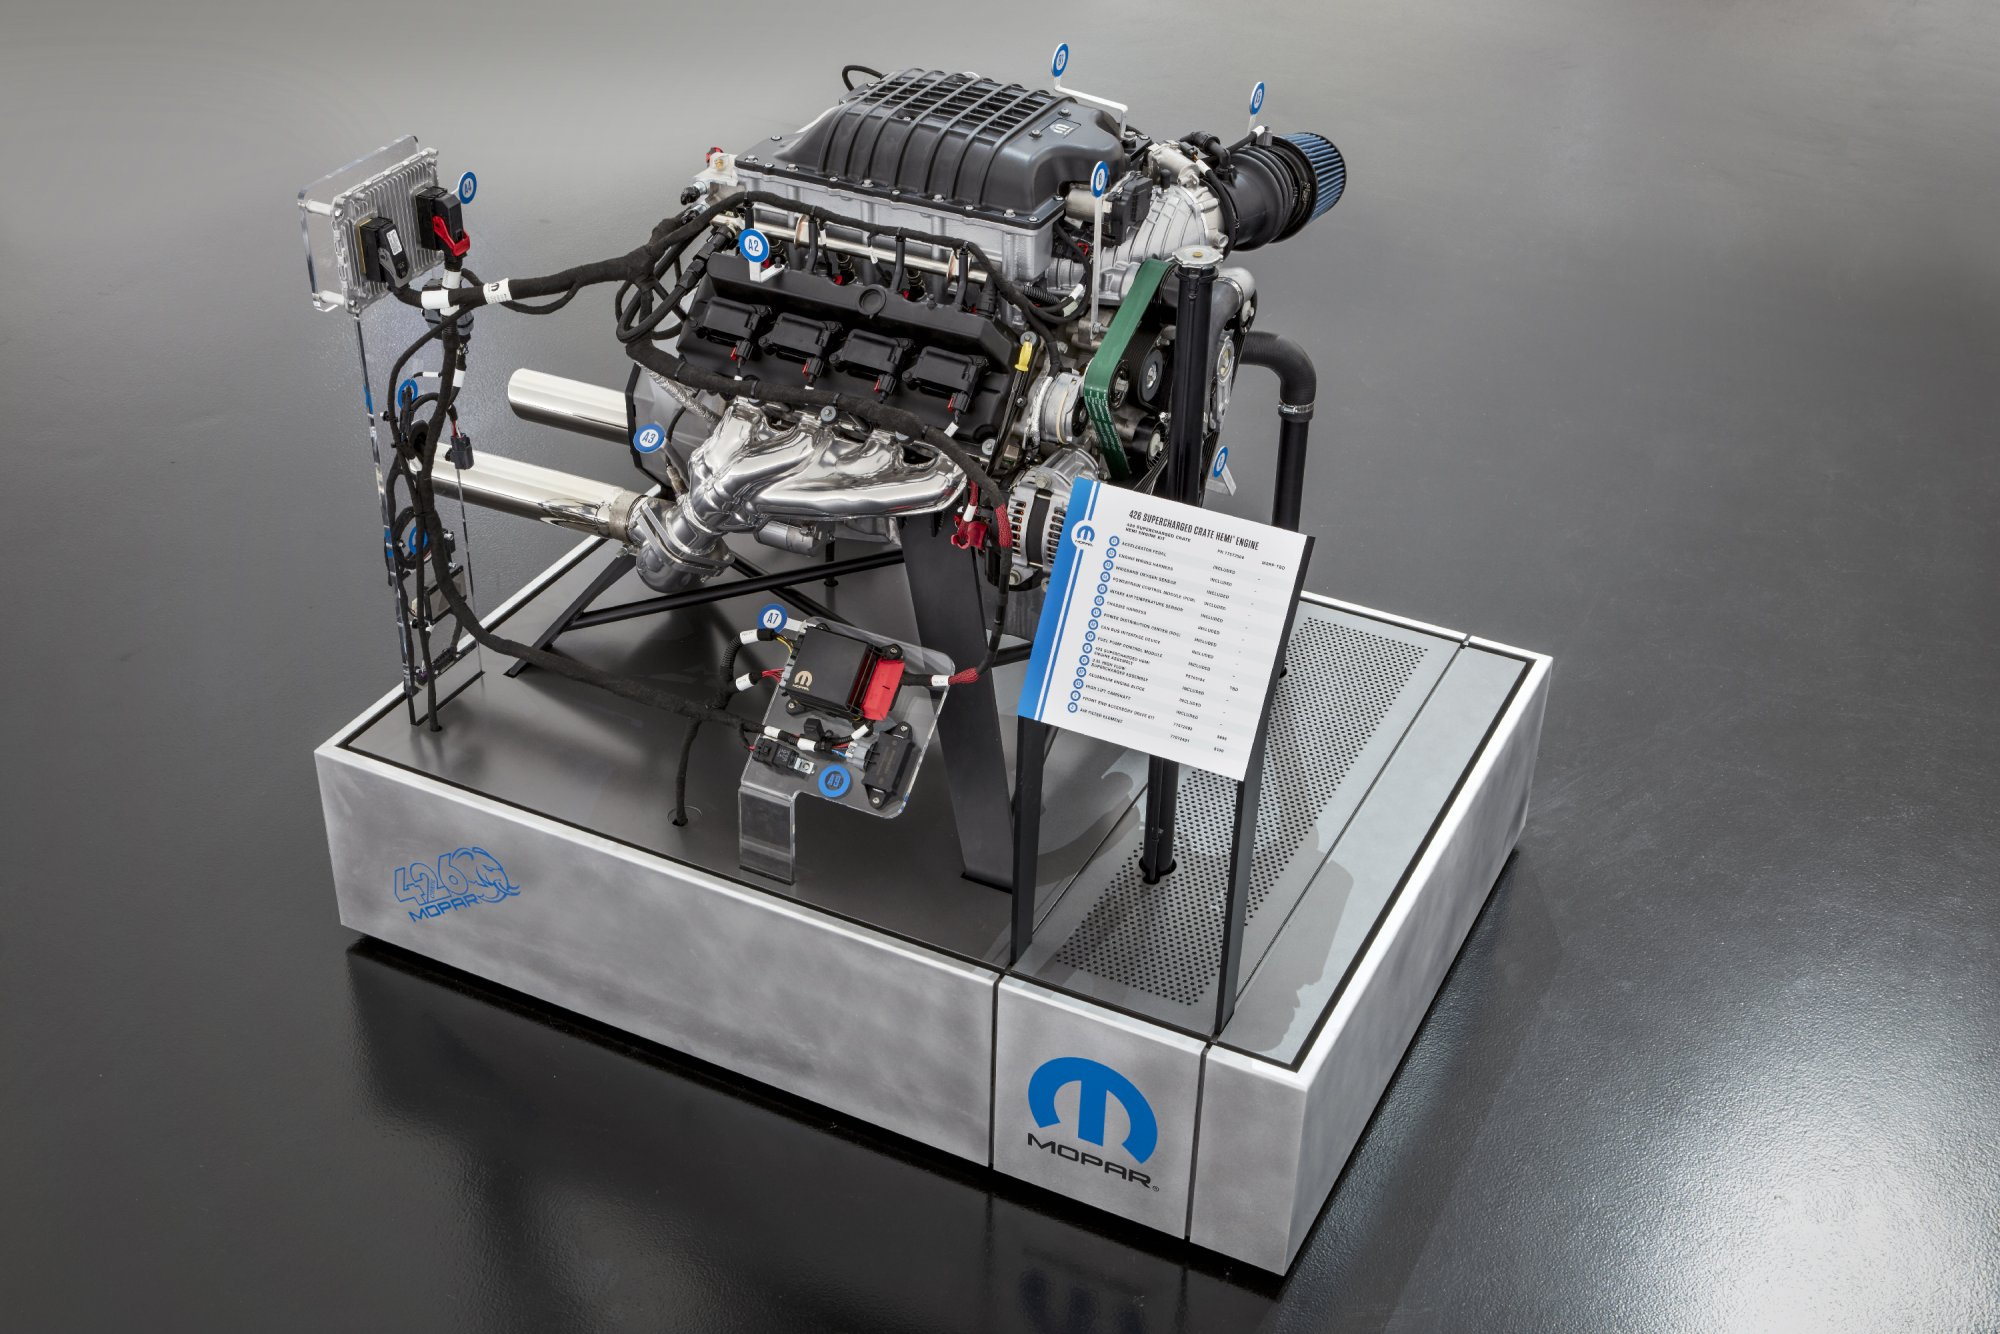 hight resolution of the hellcrate kit includes a powertrain control module pcm power distribution center engine wiring harness chassis harness accelerator pedal